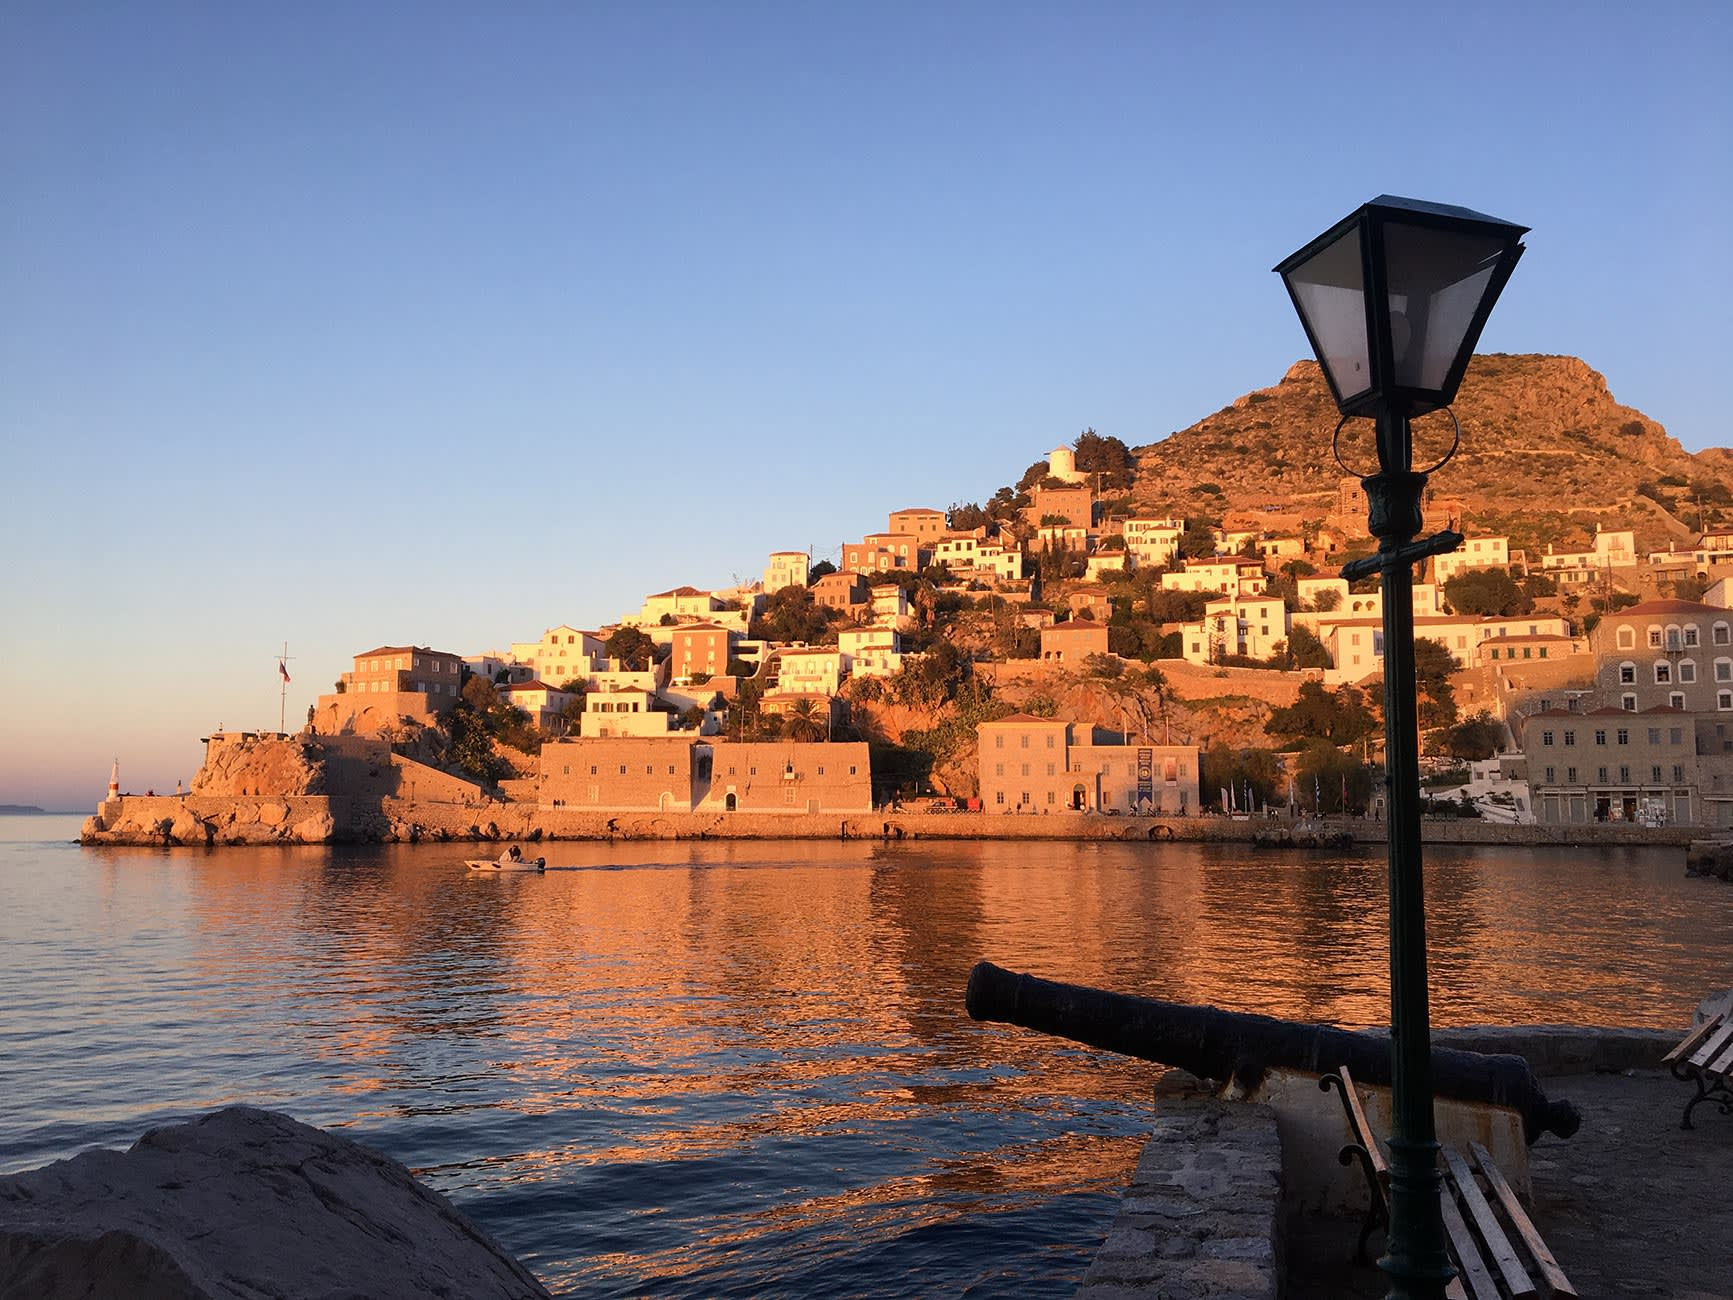 hydra, port, sun and relaxing, second home, dominique foertig